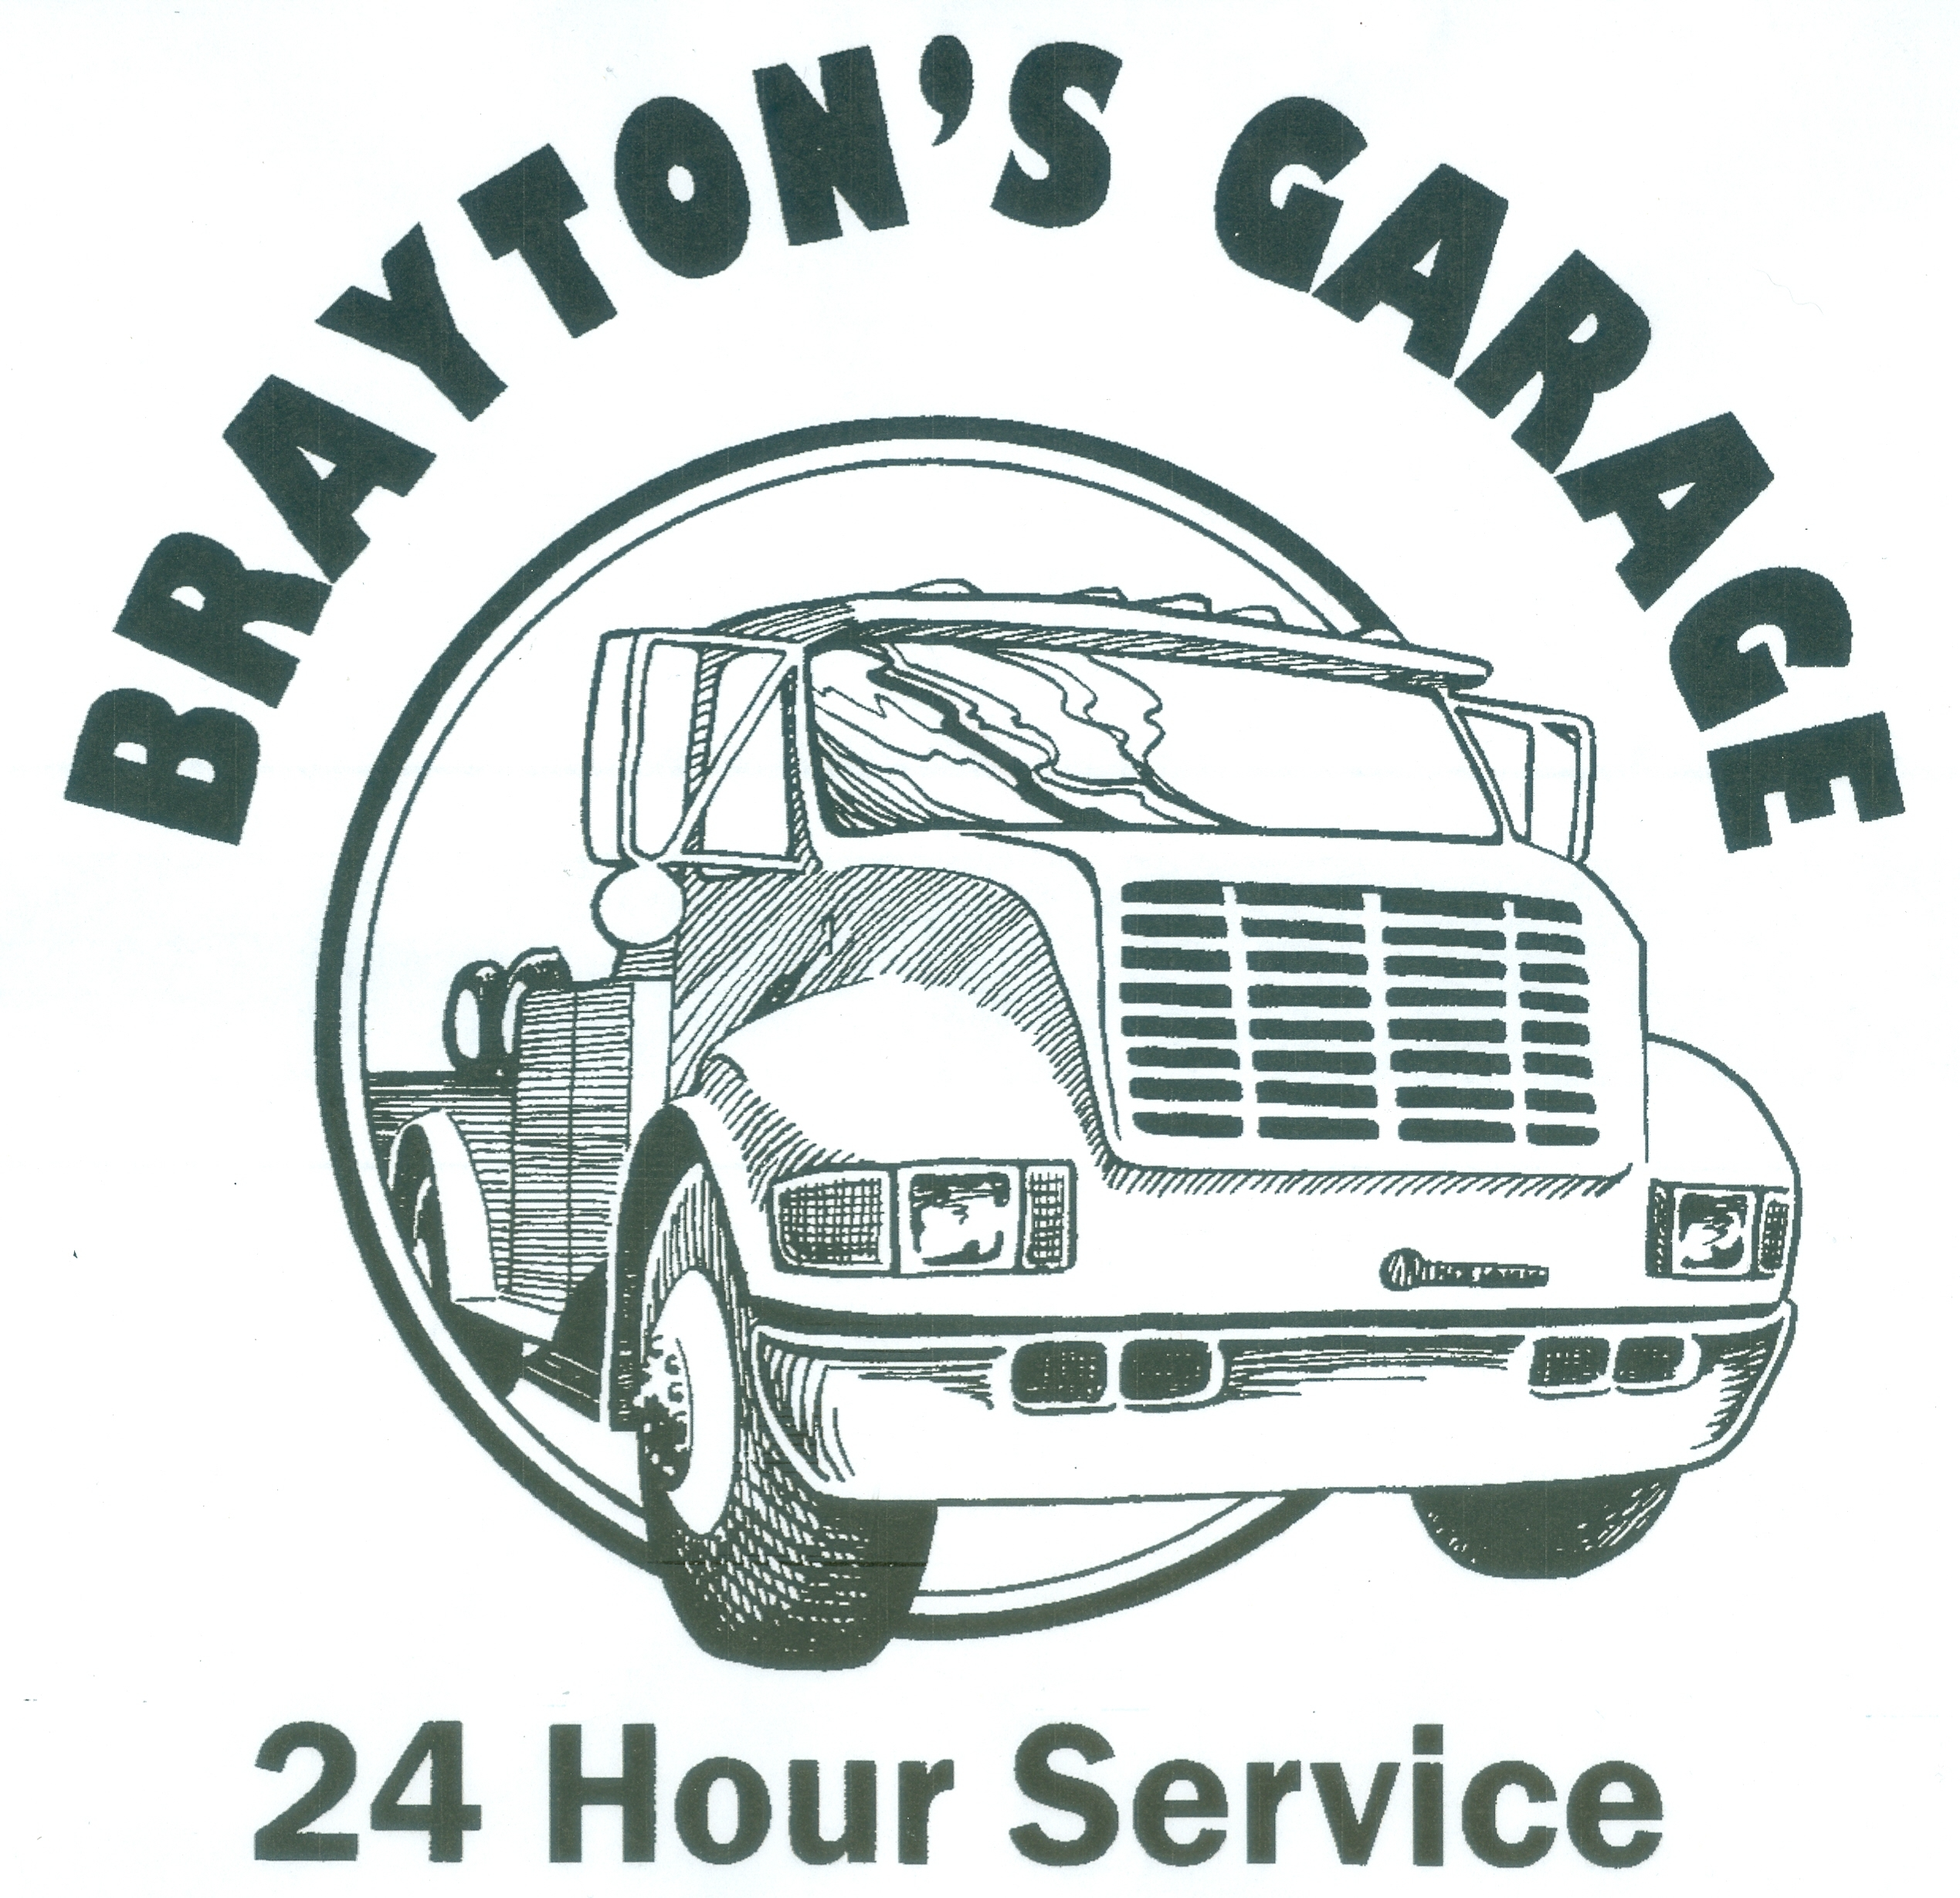 F.E. BRAYTON JR. AUTO SALES AND SERVICE logo